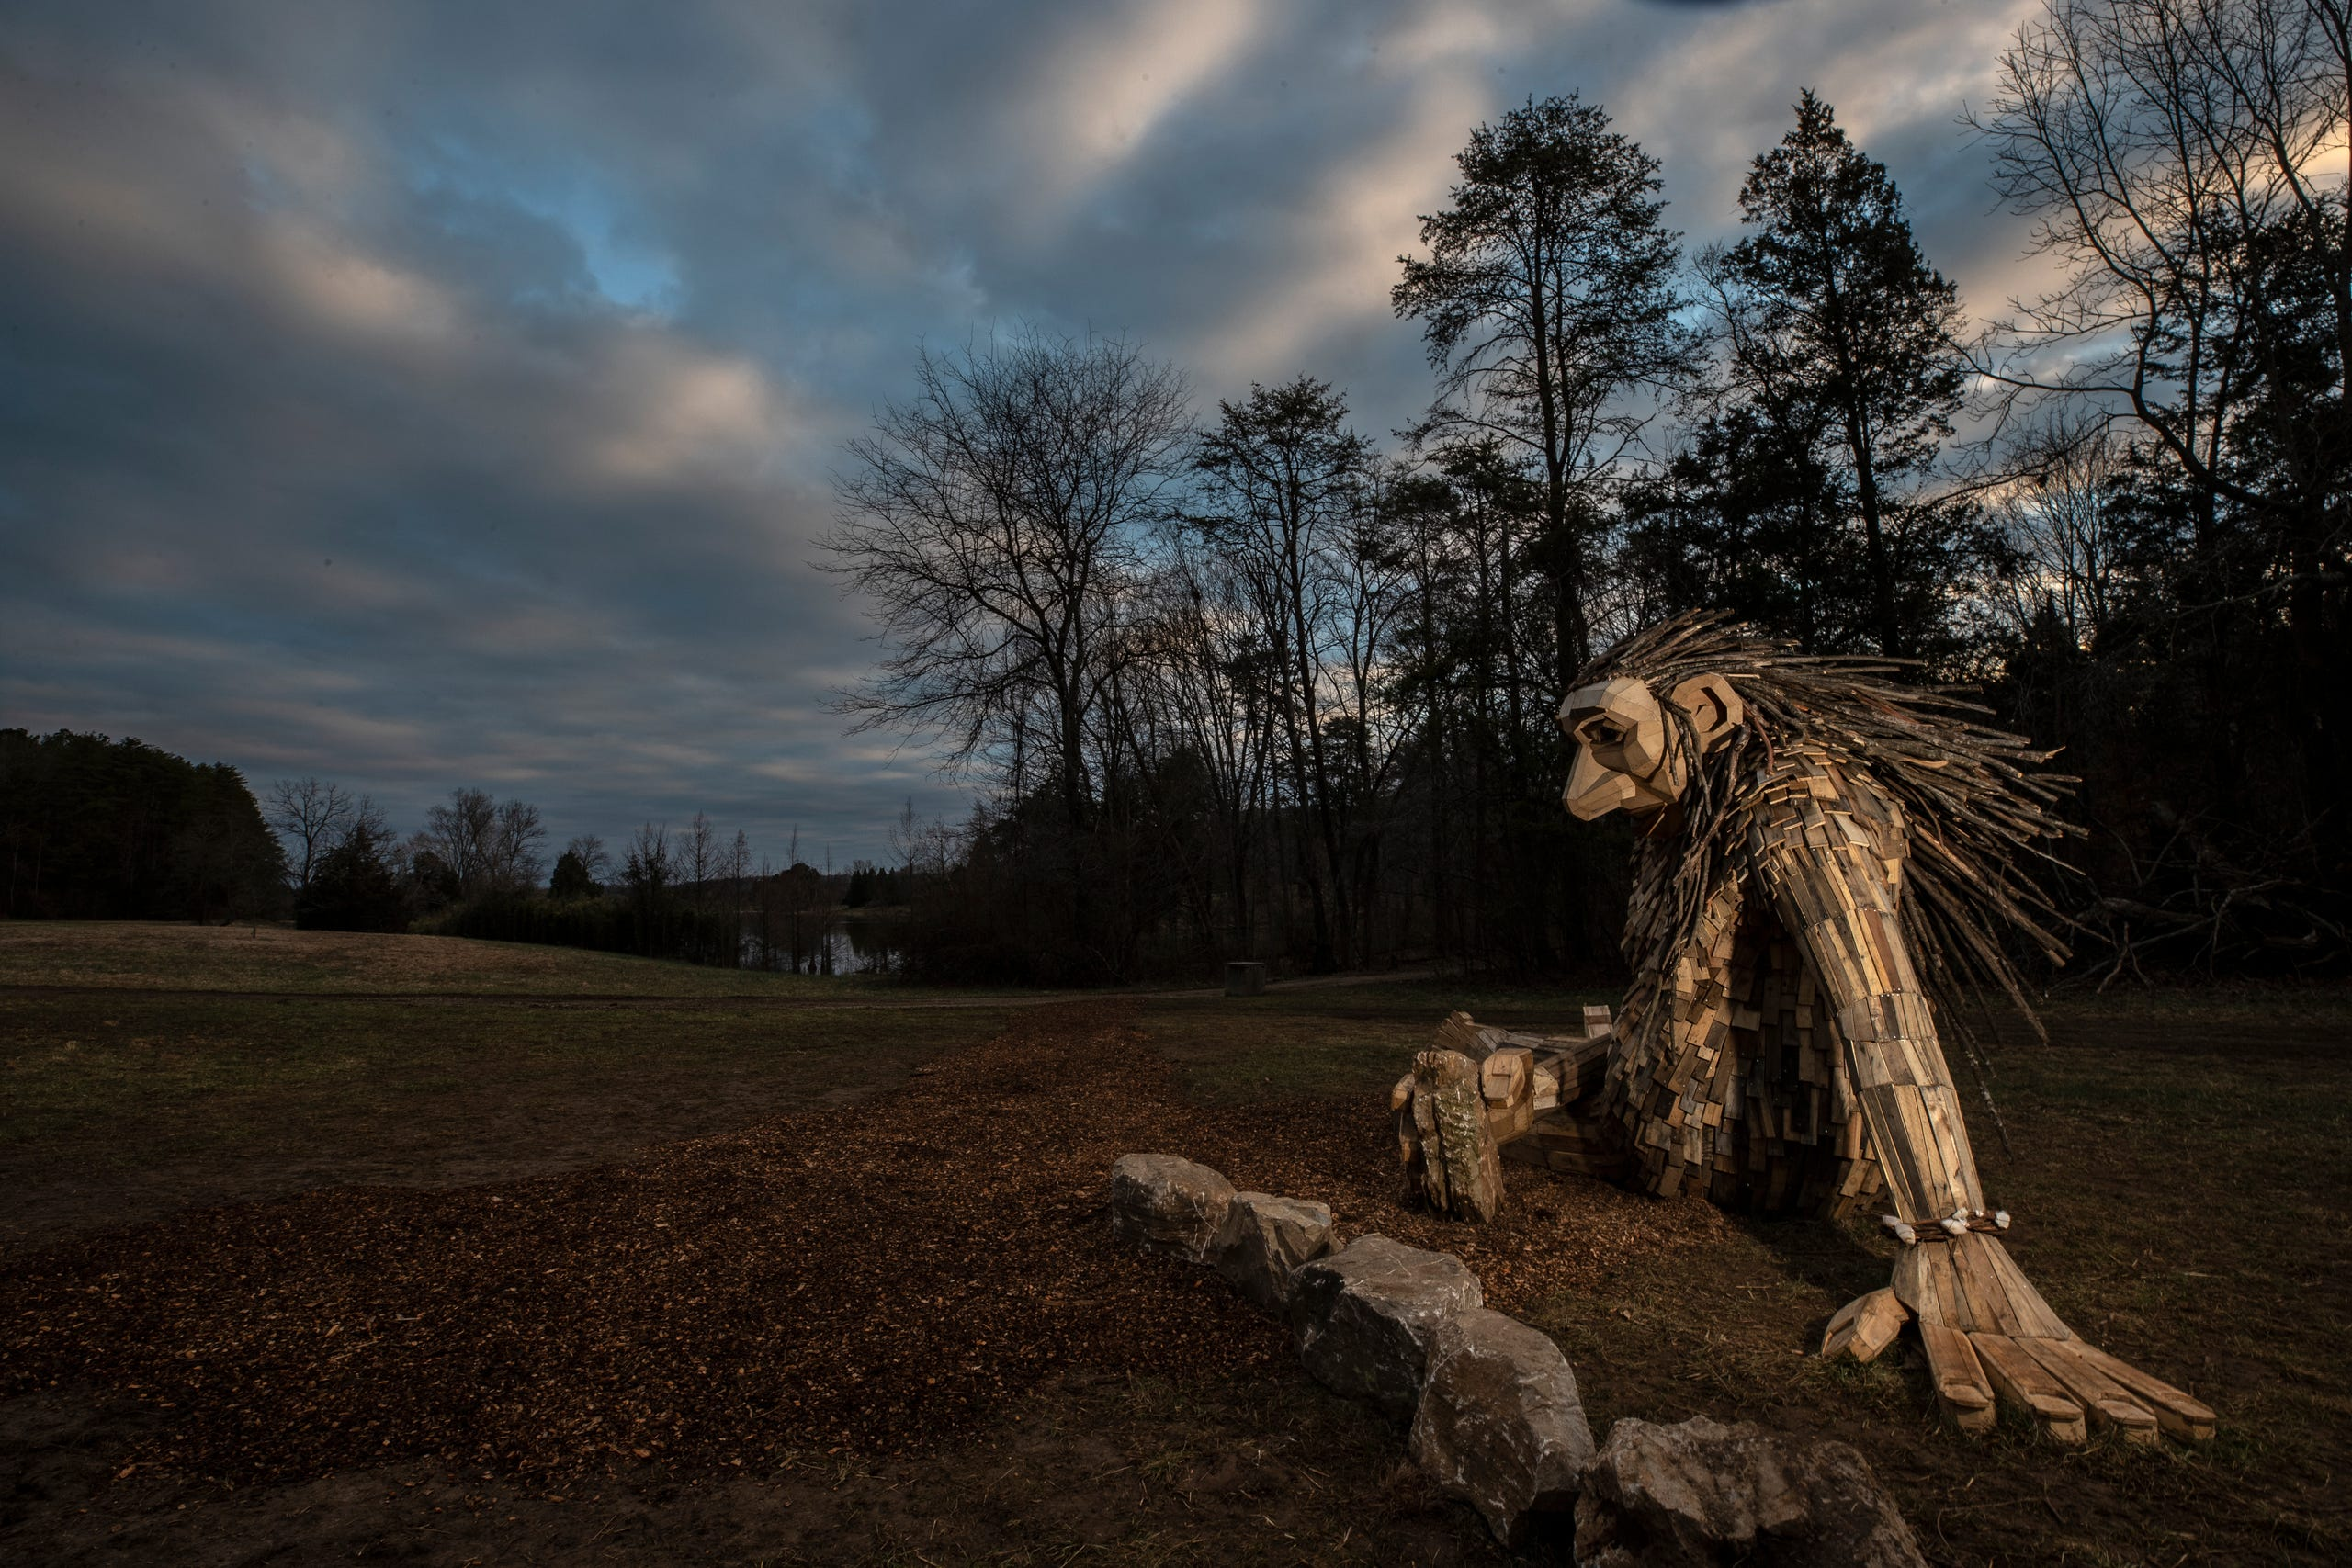 Little Elina, one of three giant trolls, reclines in a field in Bernheim Forest. March 15, 2019.